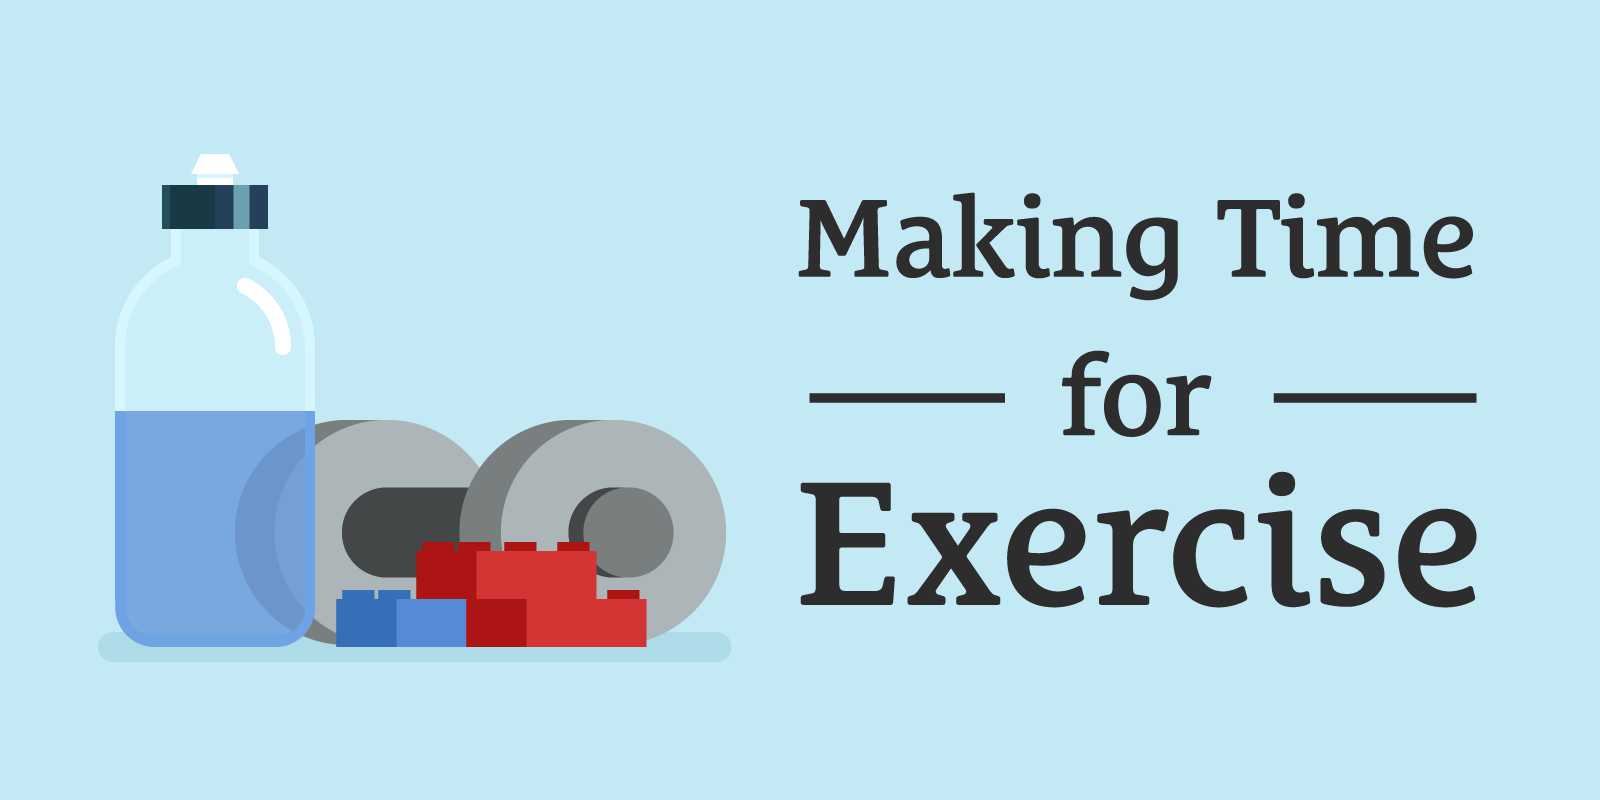 041: Making Time for Exercise When Raising Kids